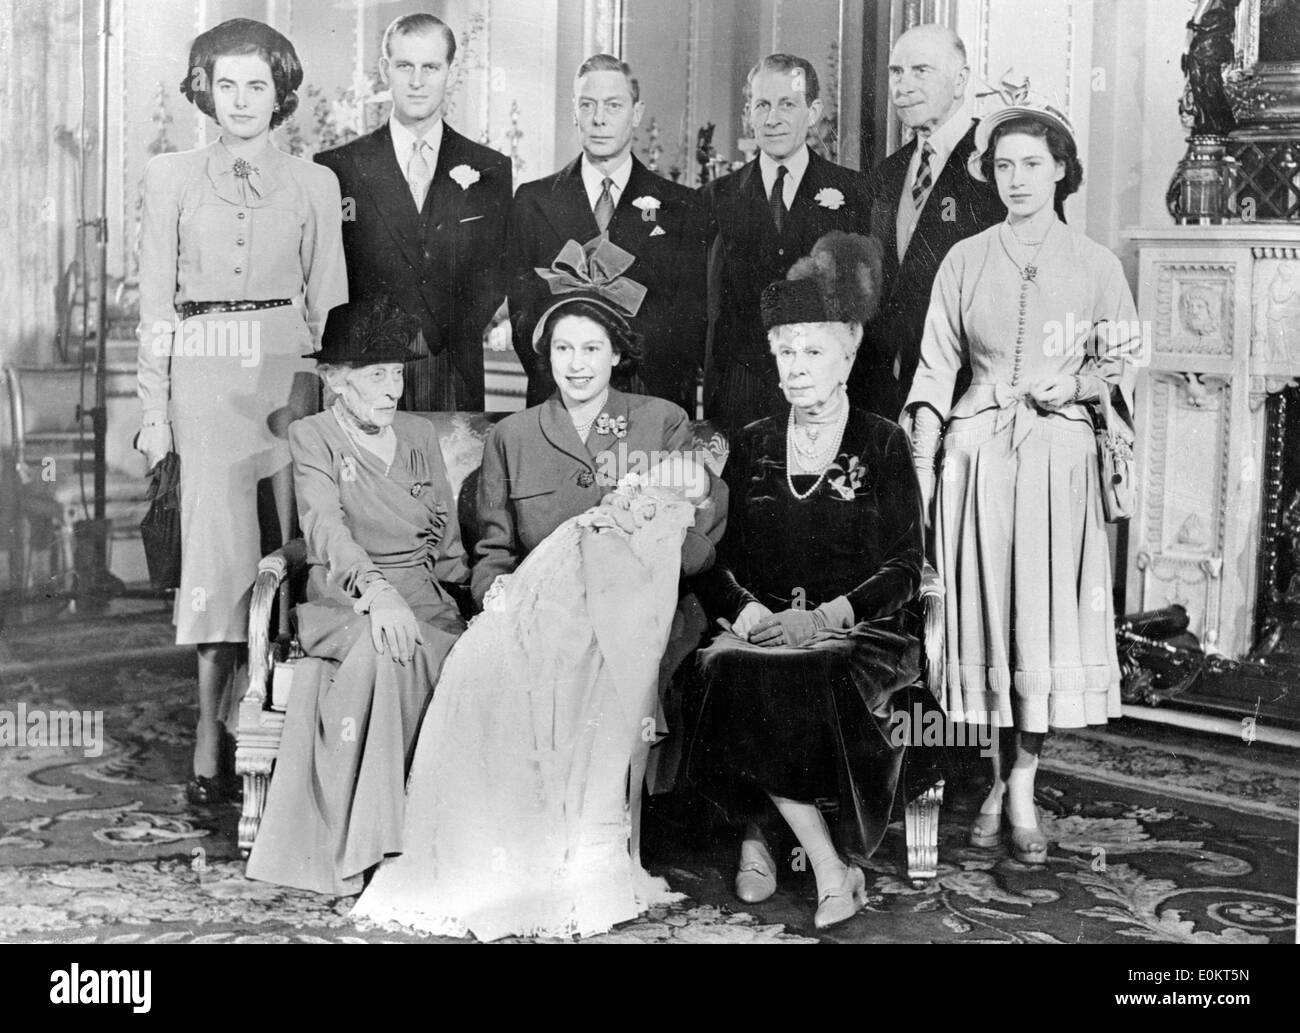 Members Of The Windsor Royal Family Along With King Haakon